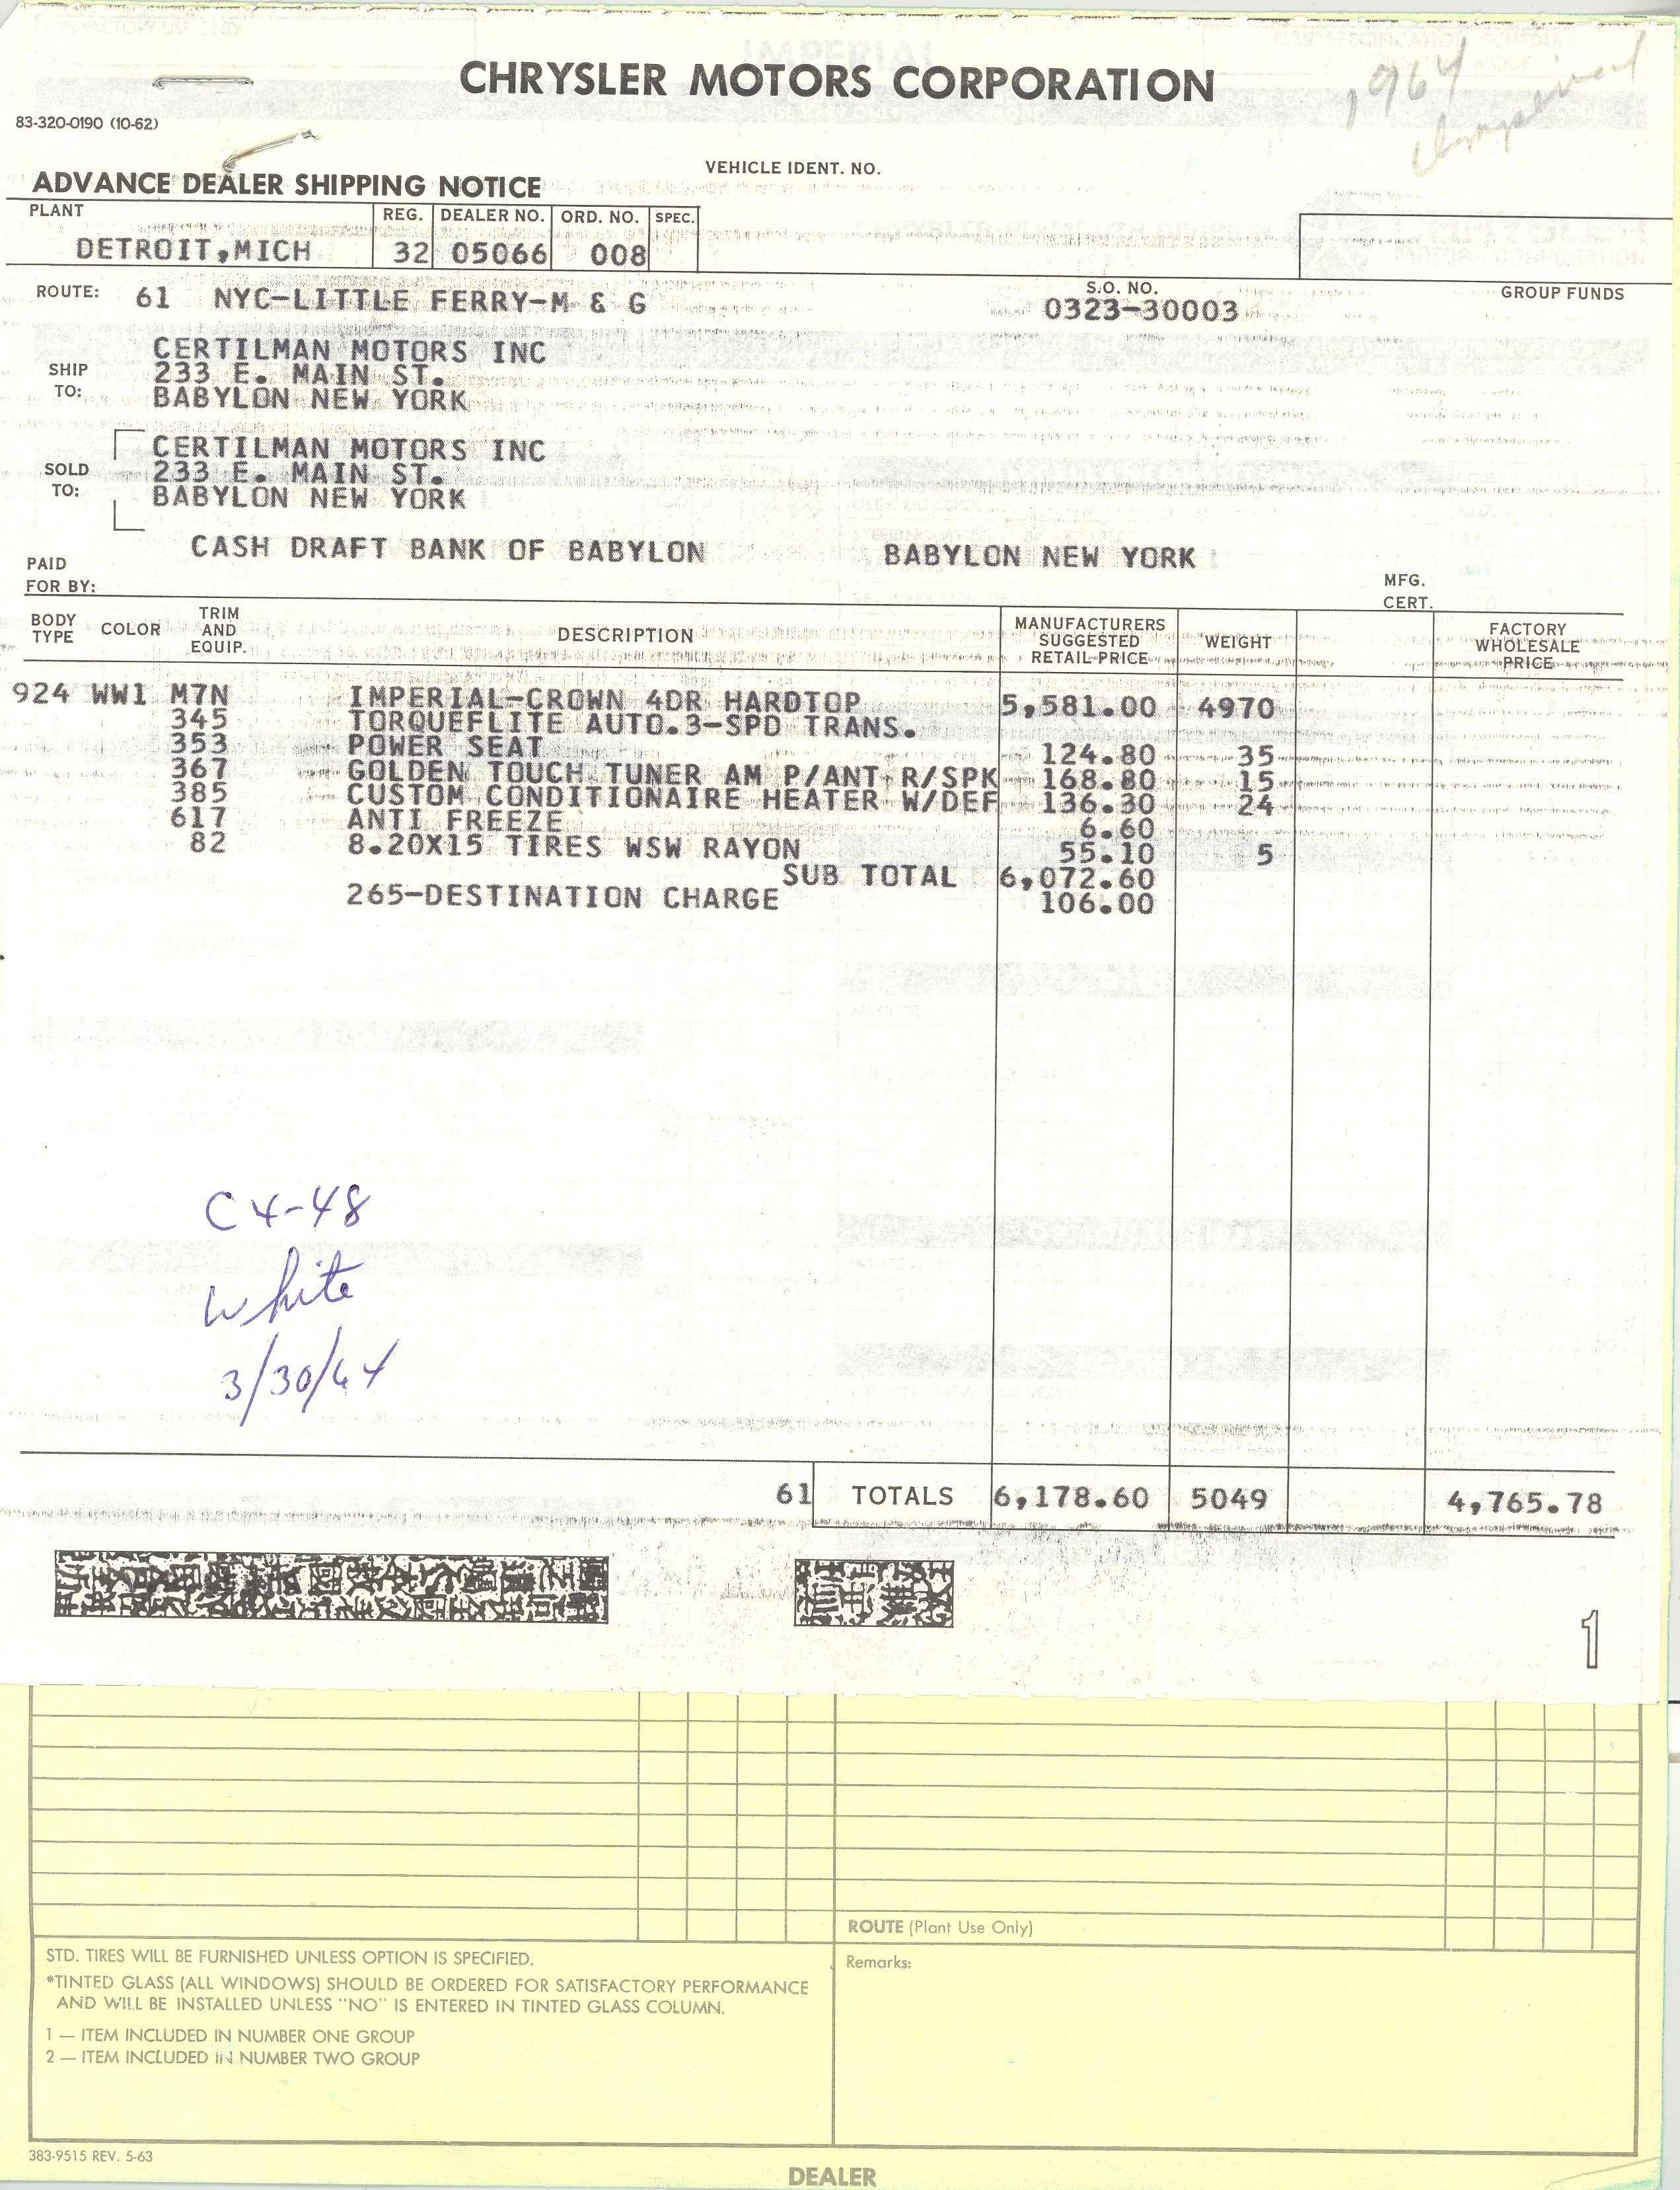 1964 crown purchase slip and dealer invoice car club print invoice